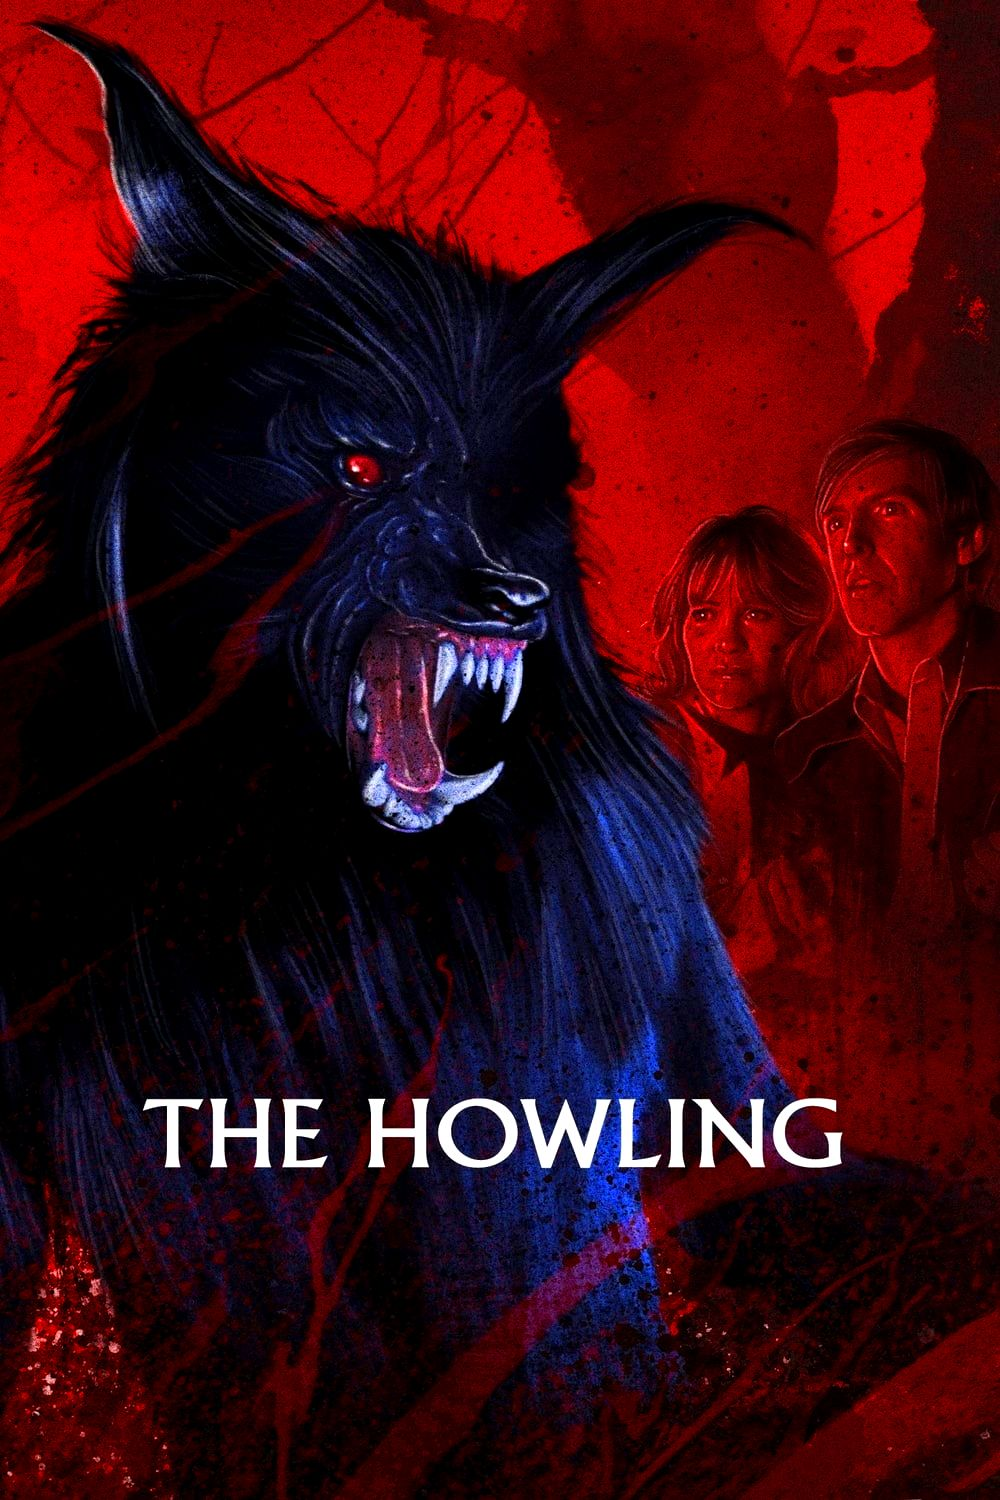 Pin by David Luna Enterprizes on The Howling The howling